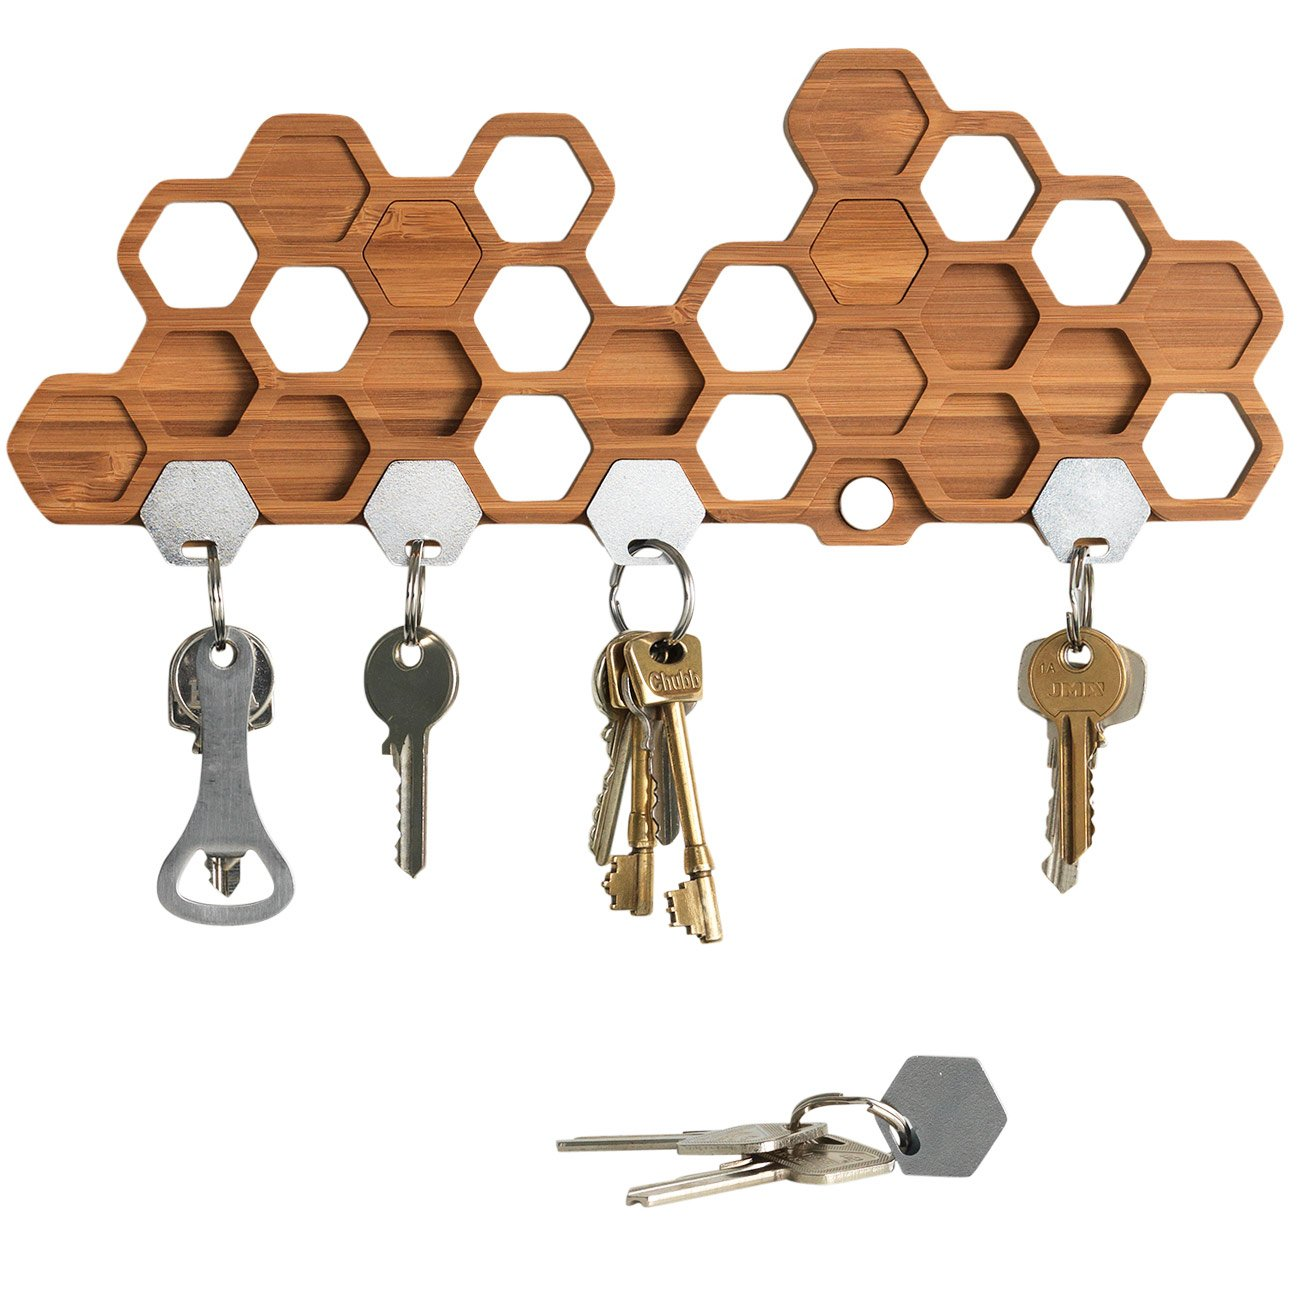 BU Products Honeycomb Magnetic Key Holder For Wall, A Unique Bamboo Mount And Decorative Wooden Storage Rack